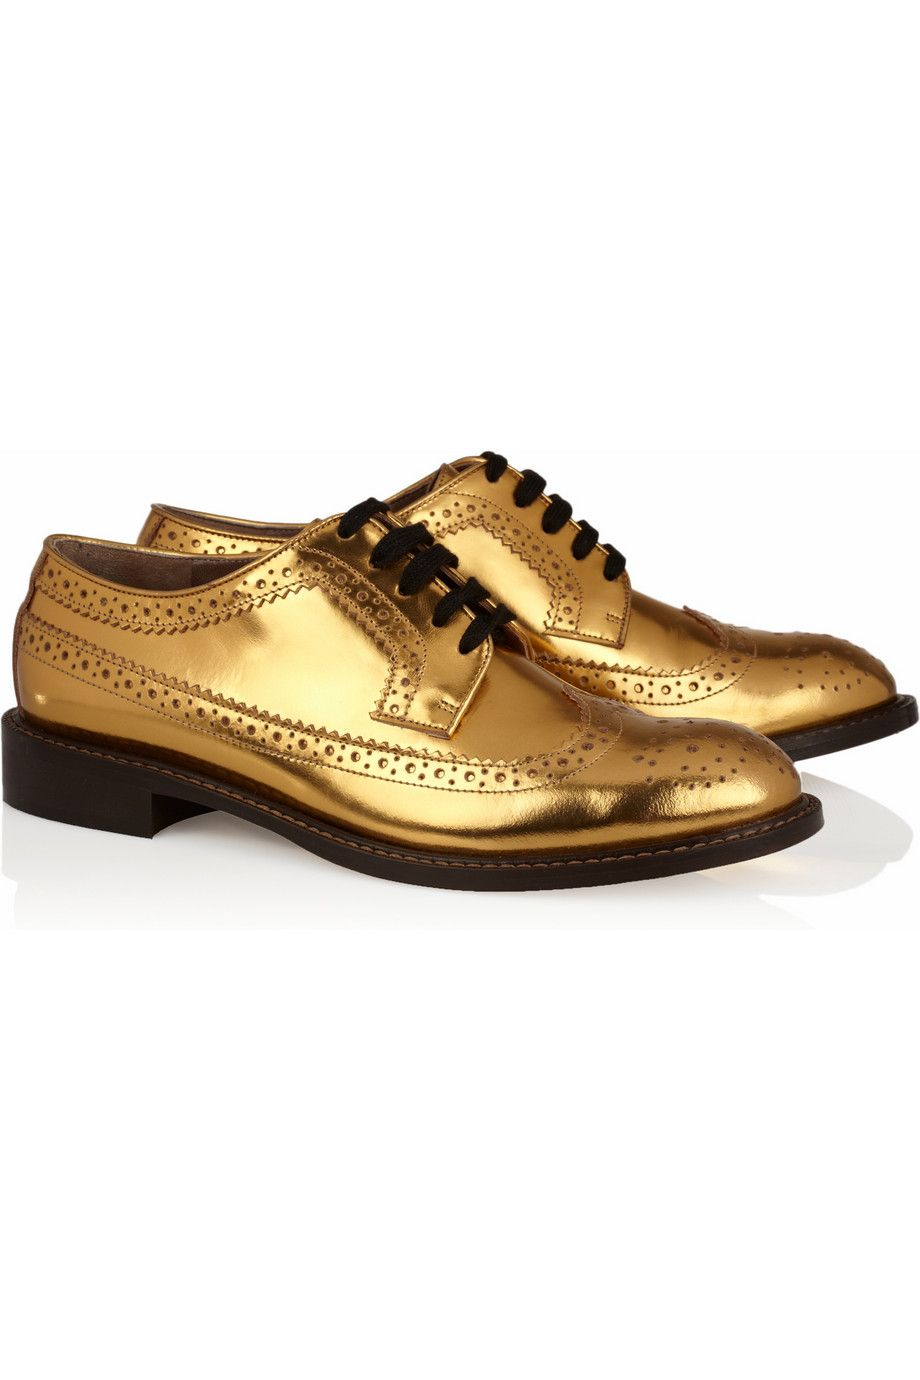 Marni Metallic Lace-Up Oxfords with credit card online hLKj4